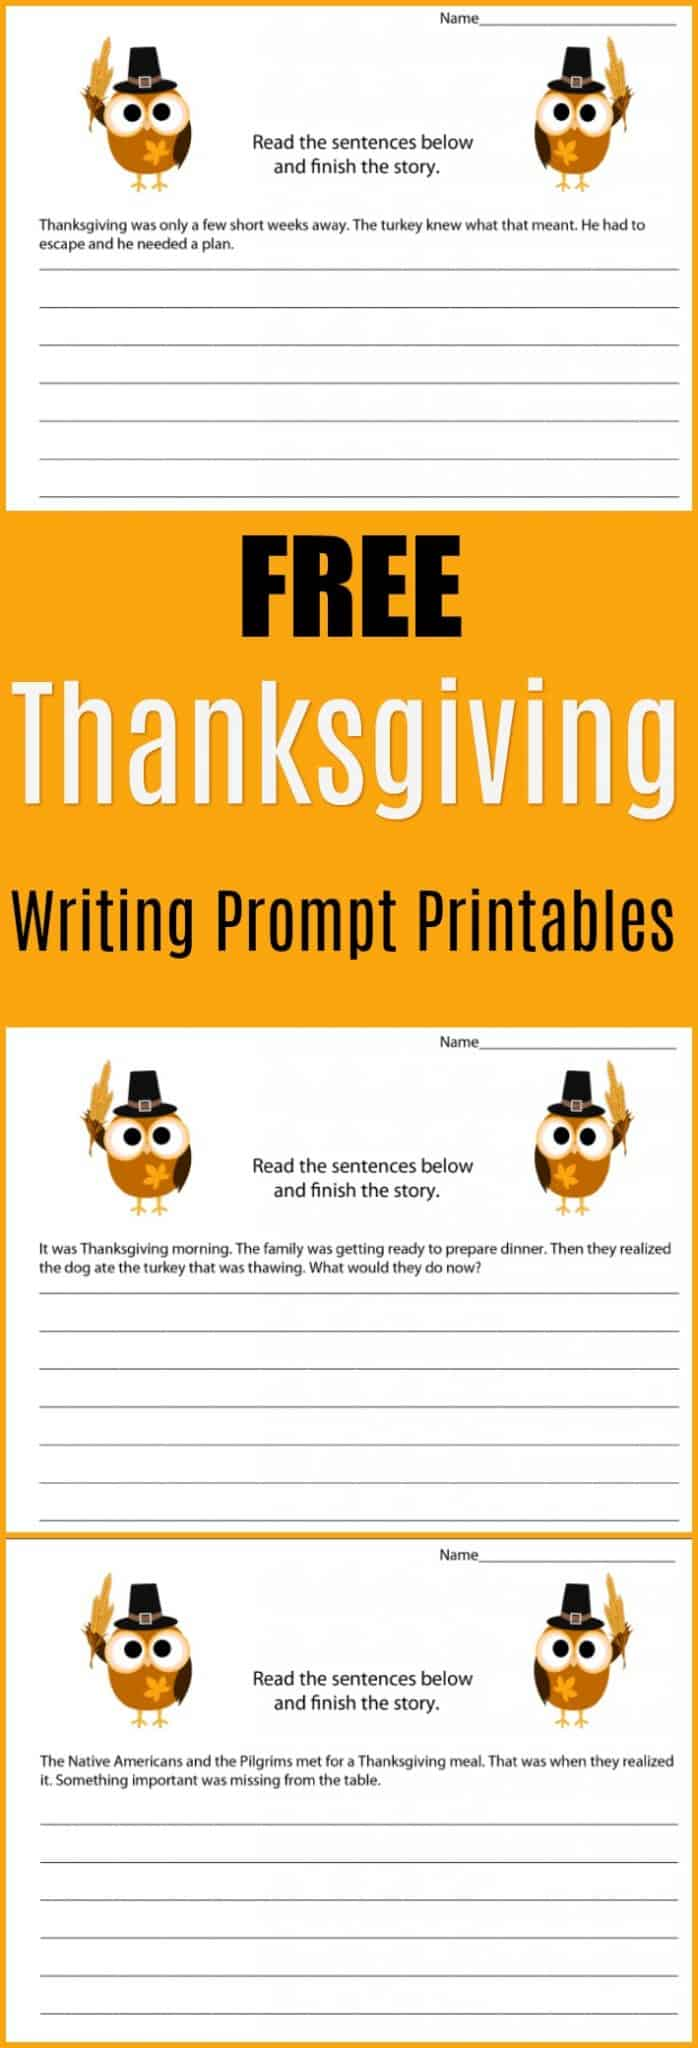 Free Thanksgiving Writing Prompt Printables